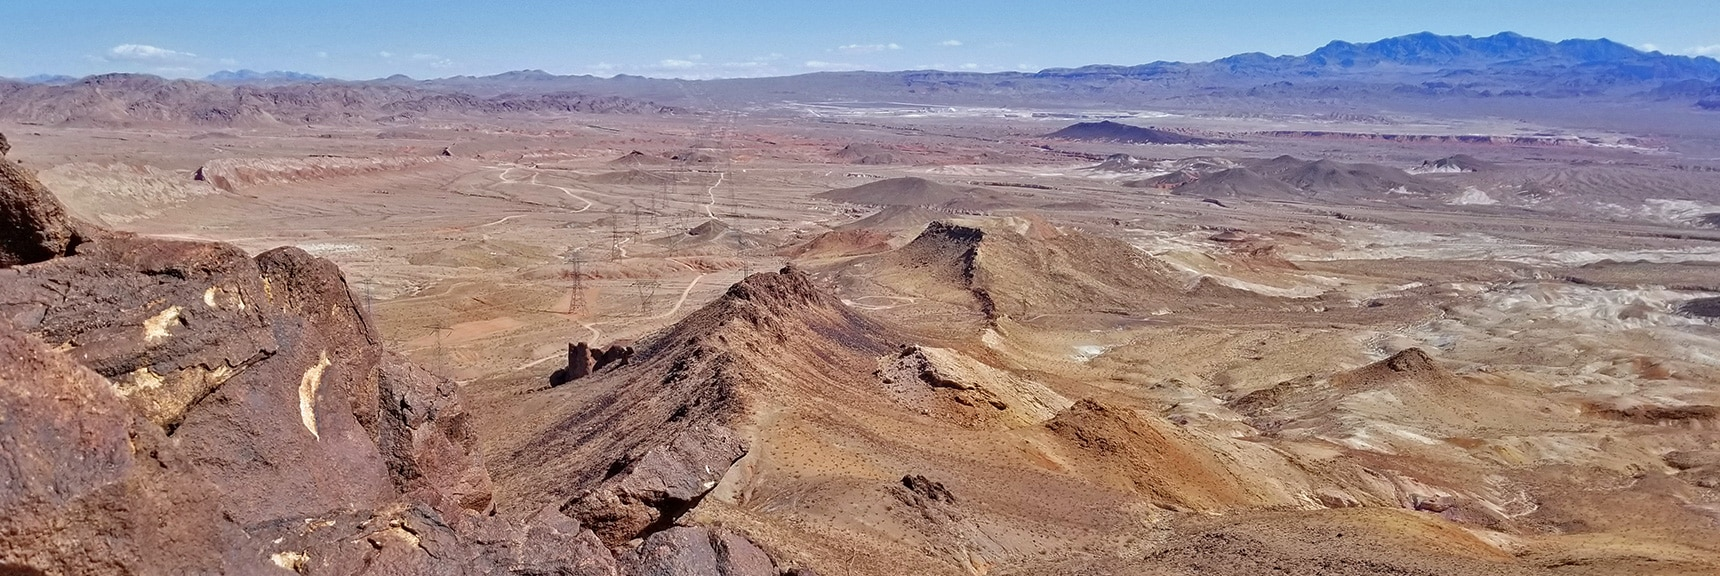 Looking Back North While Ascending the North Ridge of Lava Butte | Lava Butte | Lake Mead National Recreation Area, Nevada